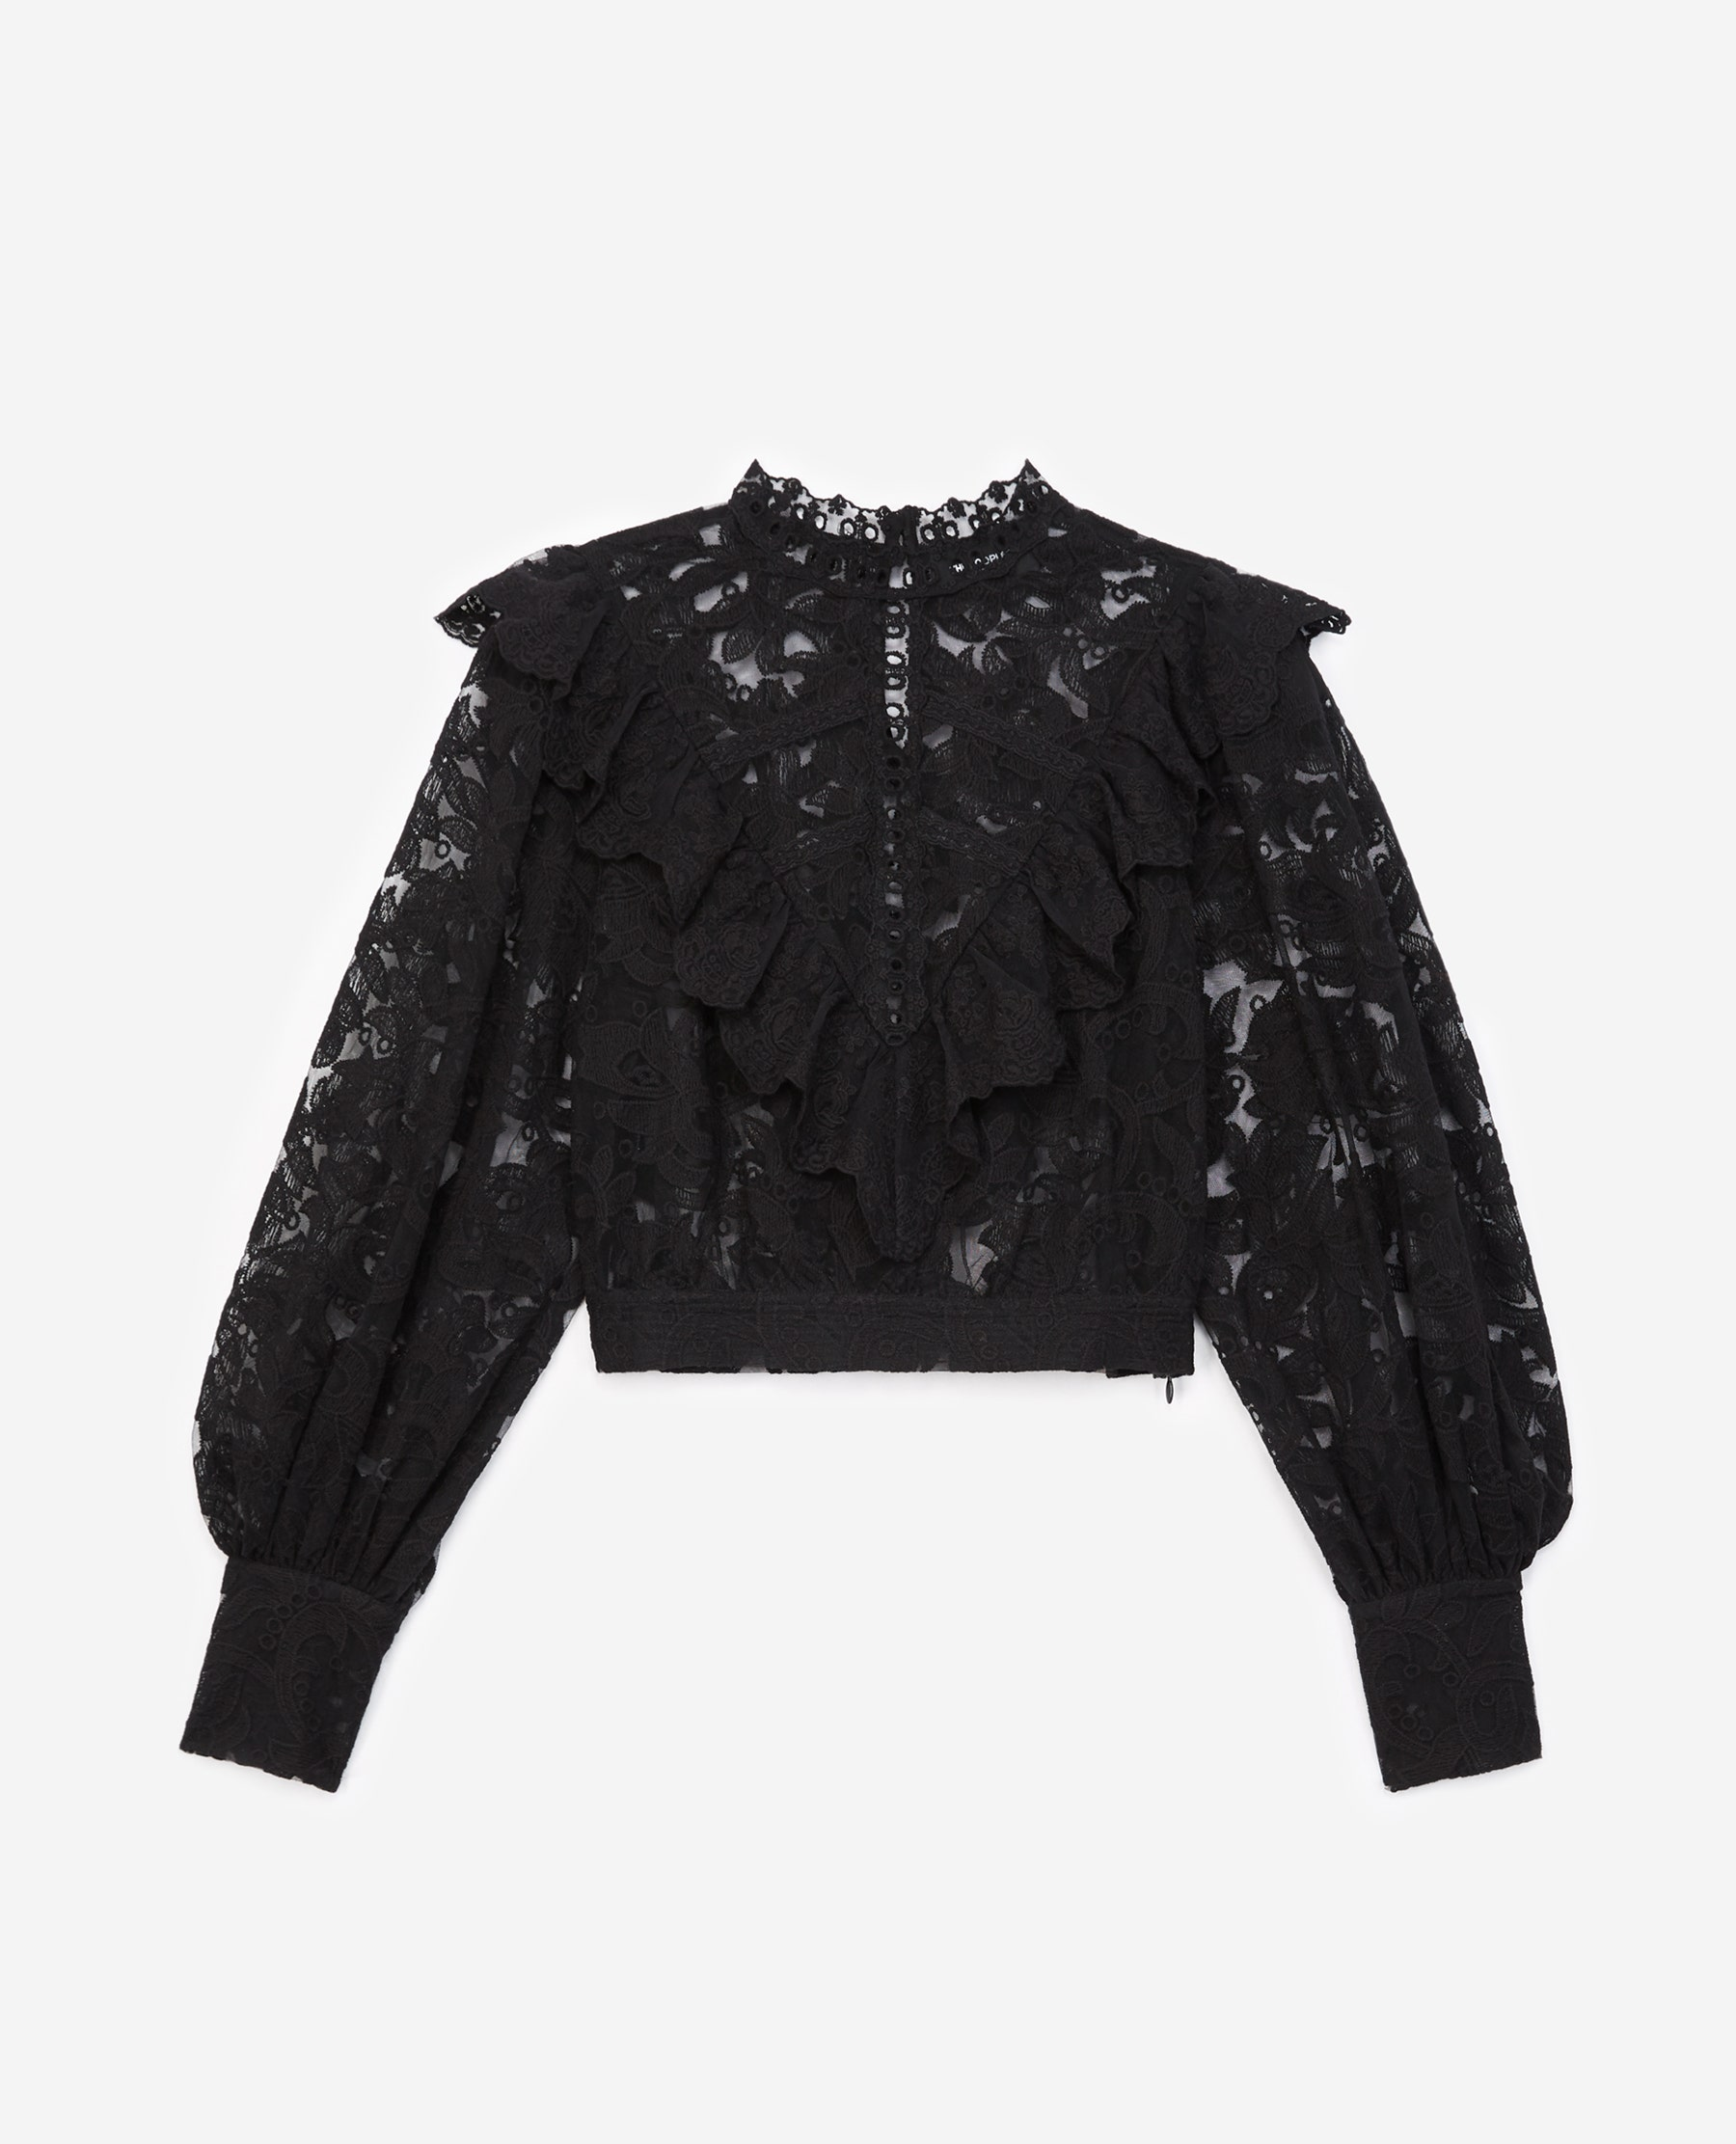 The Kooples - Black lace top with panel - WOMEN